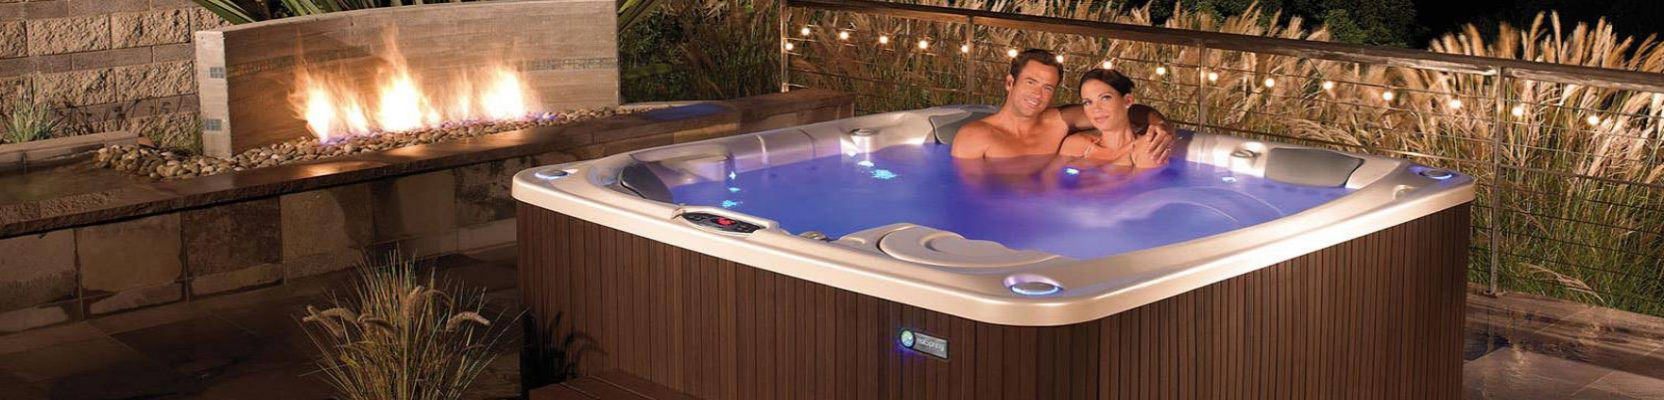 Hot Tub Repair - Home - Jersey Hot Tub Repair